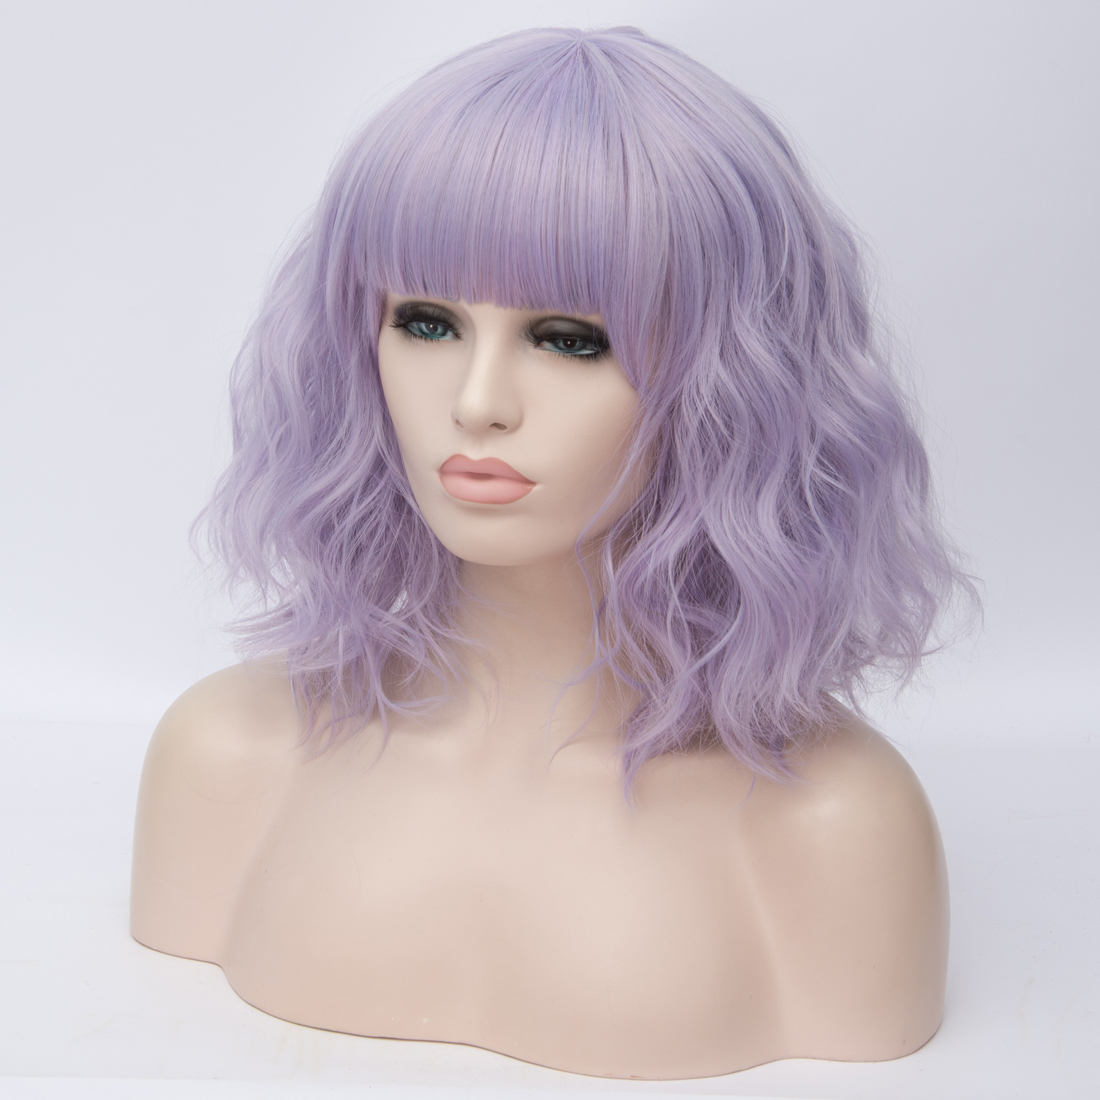 H29374e1521d6499b8362bbabdcde3d26h - Similler Short Synthetic Wig for Women Cosplay Curly Hair Heat Resistance Ombre Color Blue Purple Pink Green Orange Two Tones